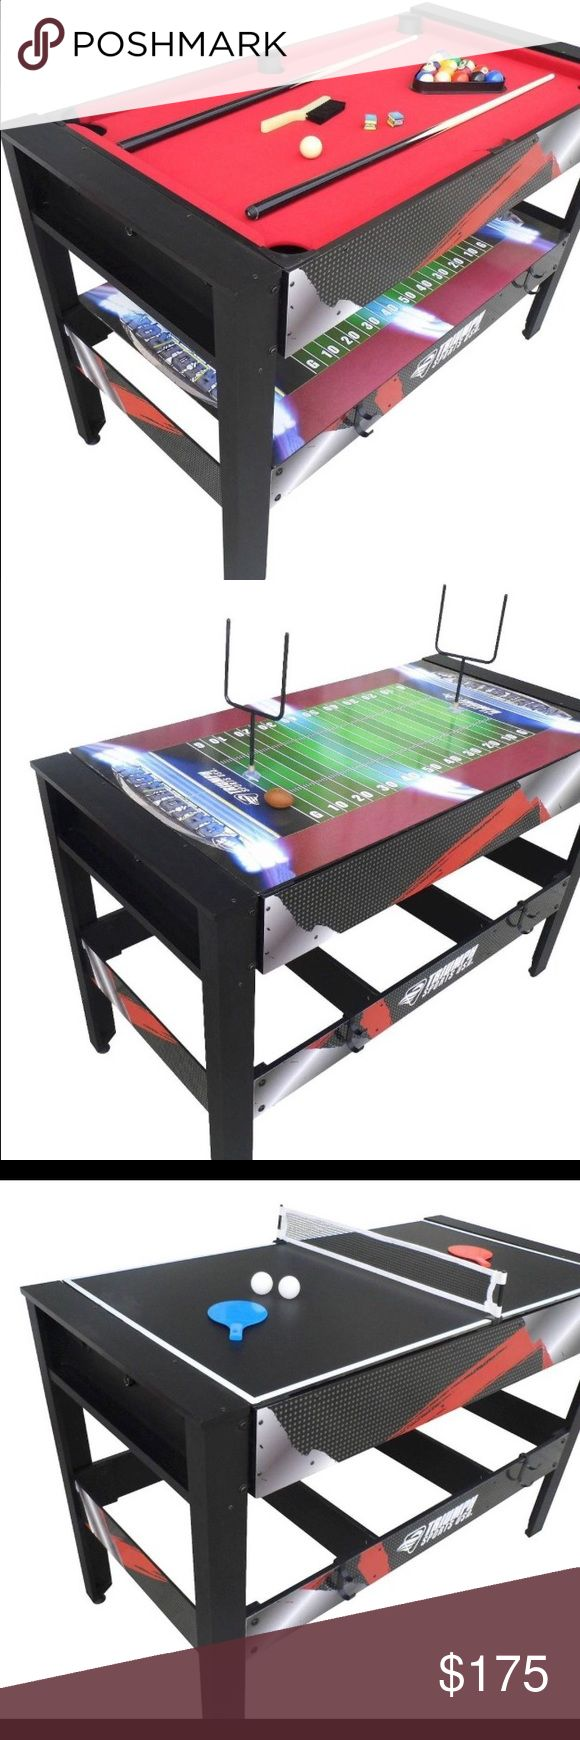 4 in 1 Triumph sports table Used but good condition Other